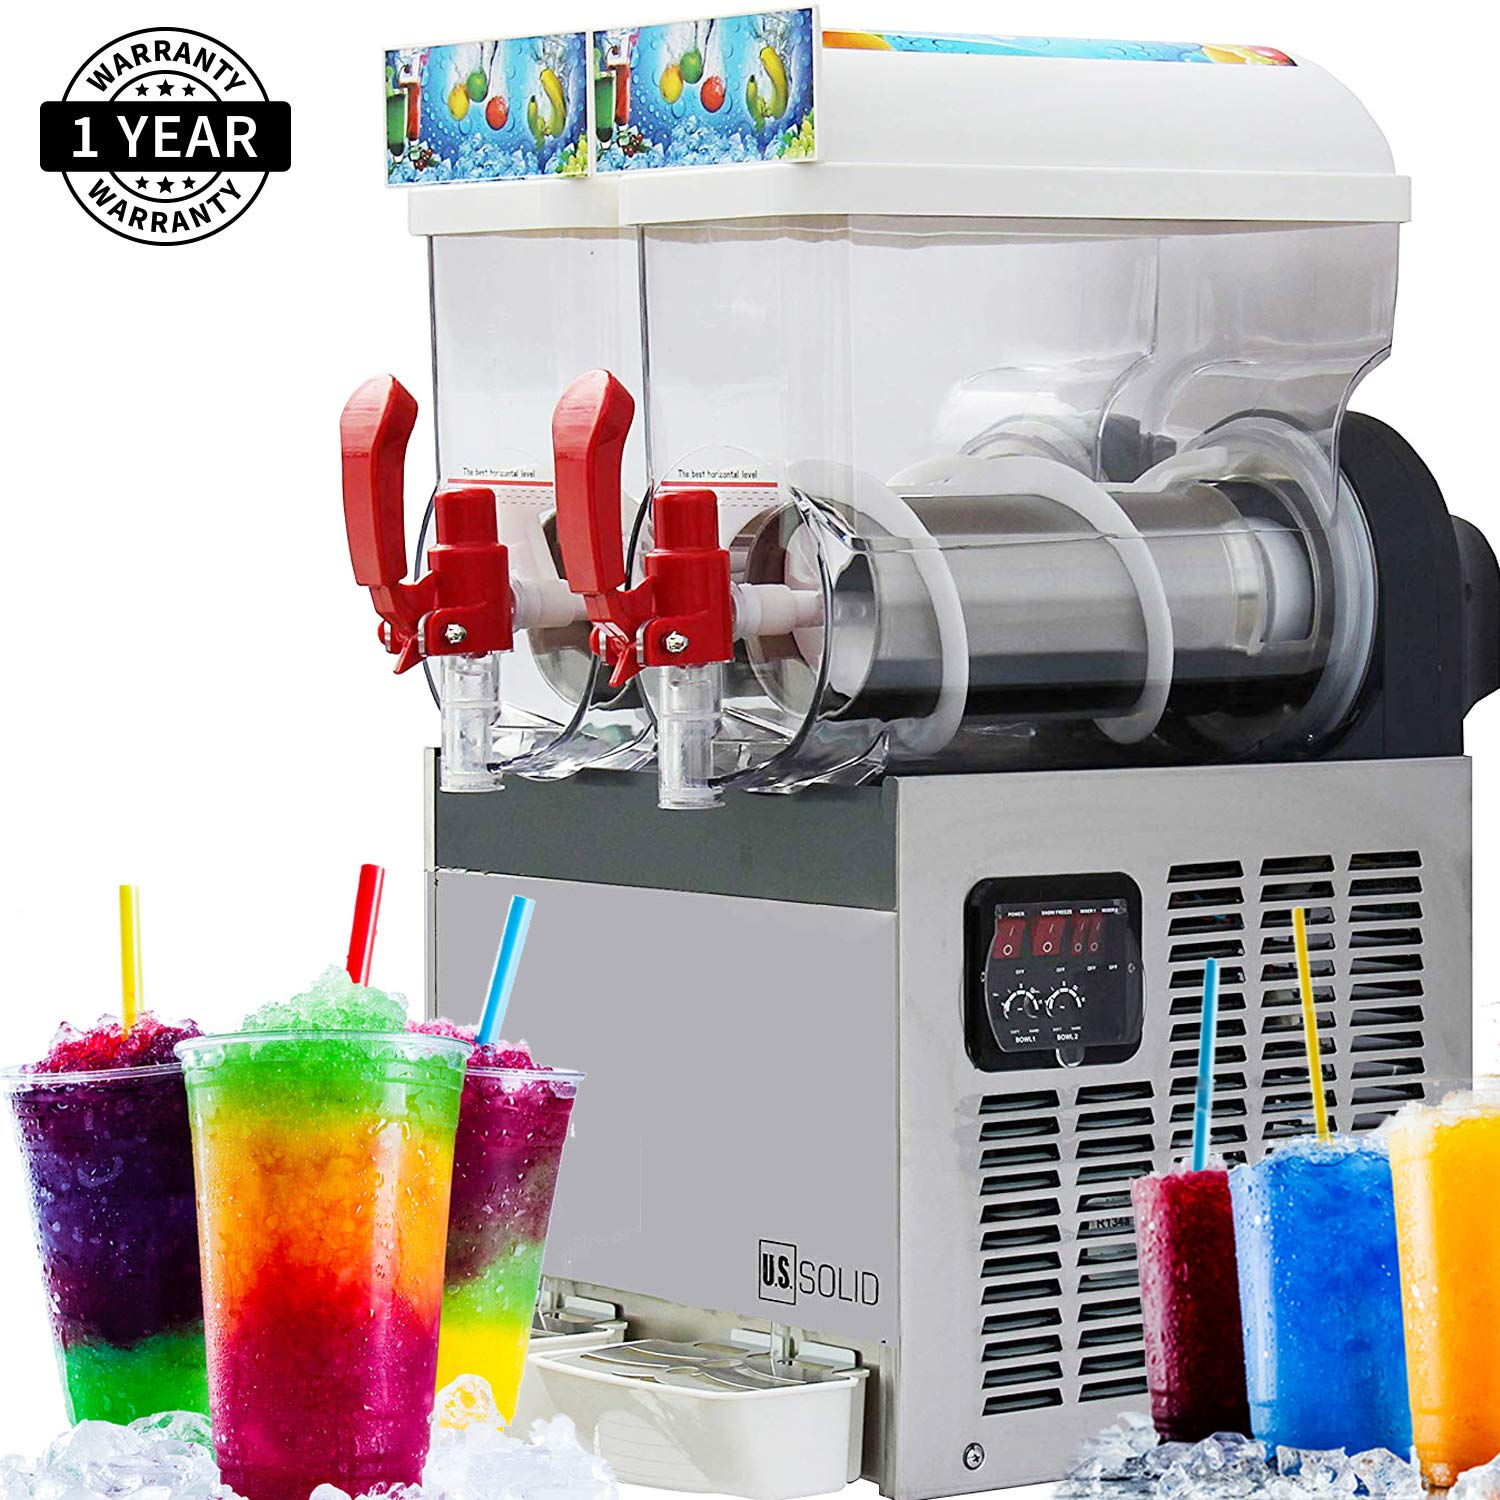 Slush Machine- Slushie Machine with Two 15L Tanks, 110V and 60Hz, Make the Perfect Fine Ice Slushies with the Frozen Drink Machine, Parts Available in the USA from Cleveland Ohio, a U.S. Solid Product by U.S. Solid